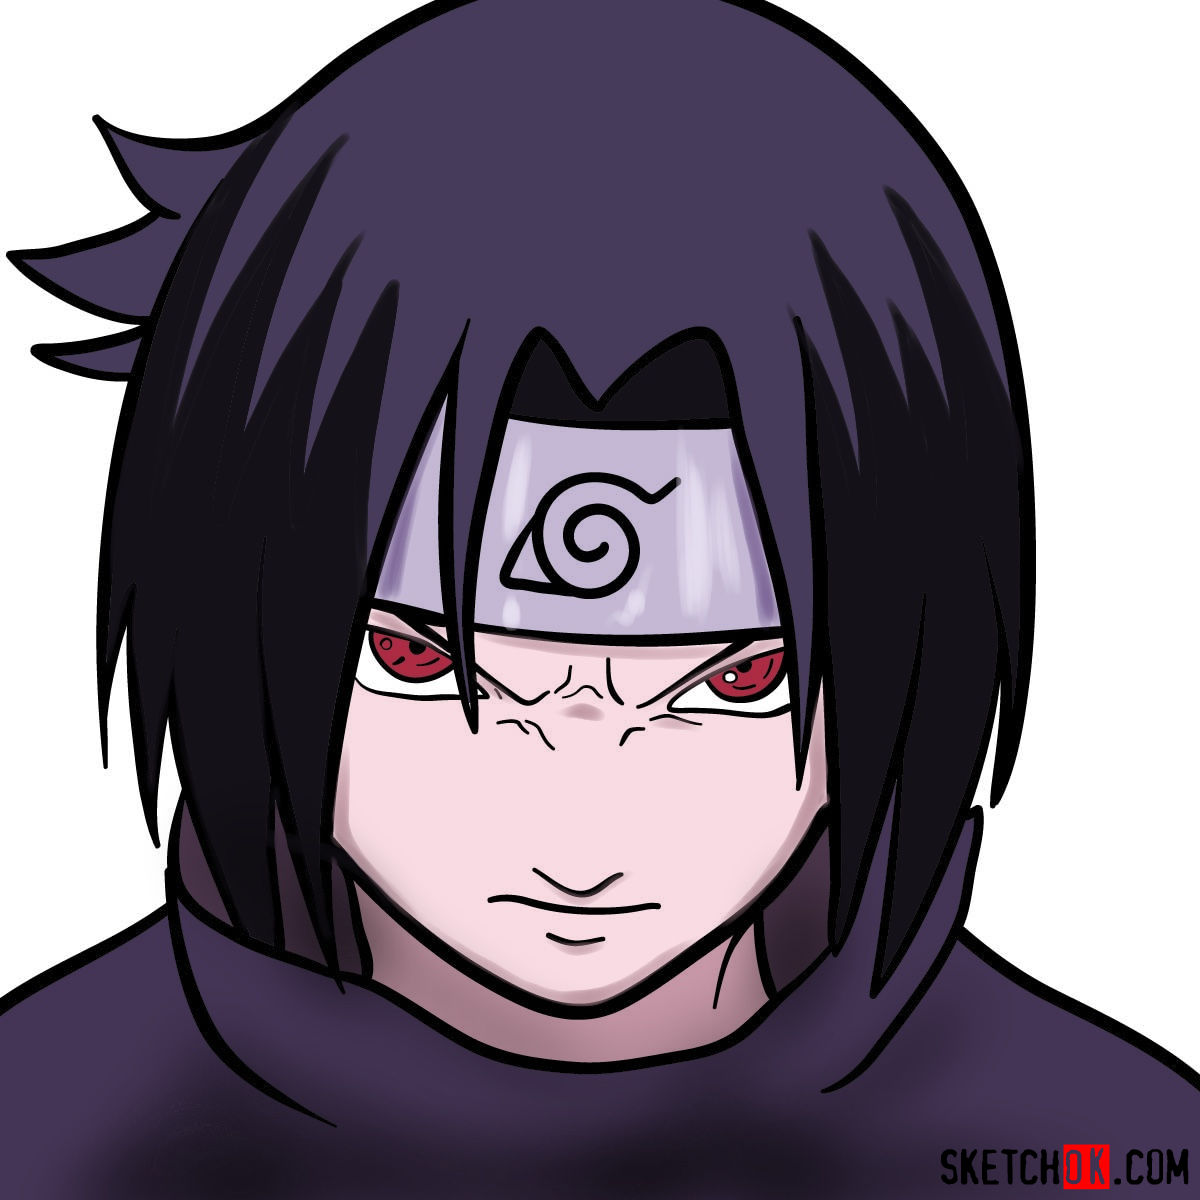 How to draw Sasuke's face (Naruto anime)